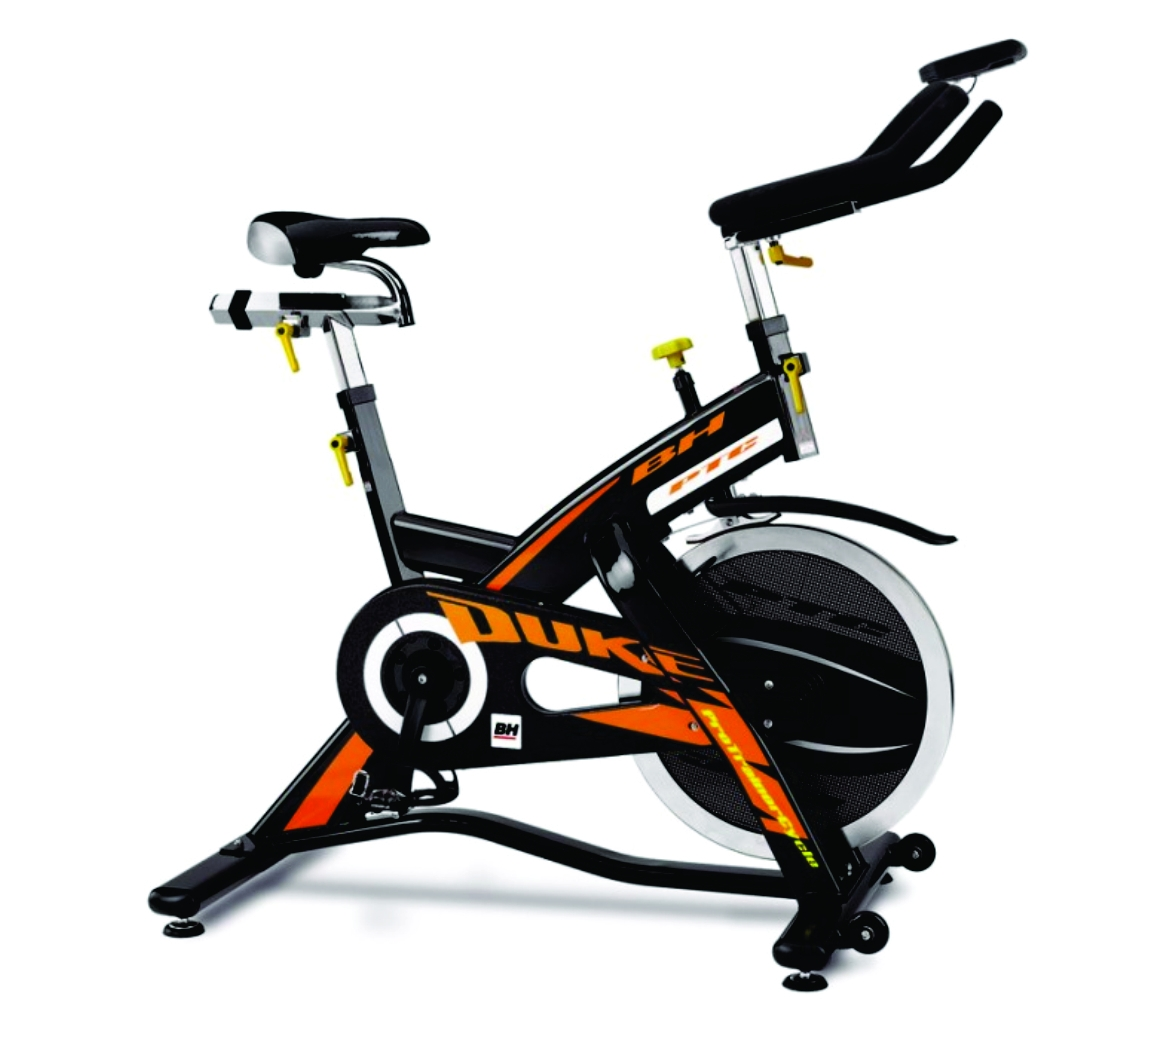 KOLESA ZA INDOOR CYCLING